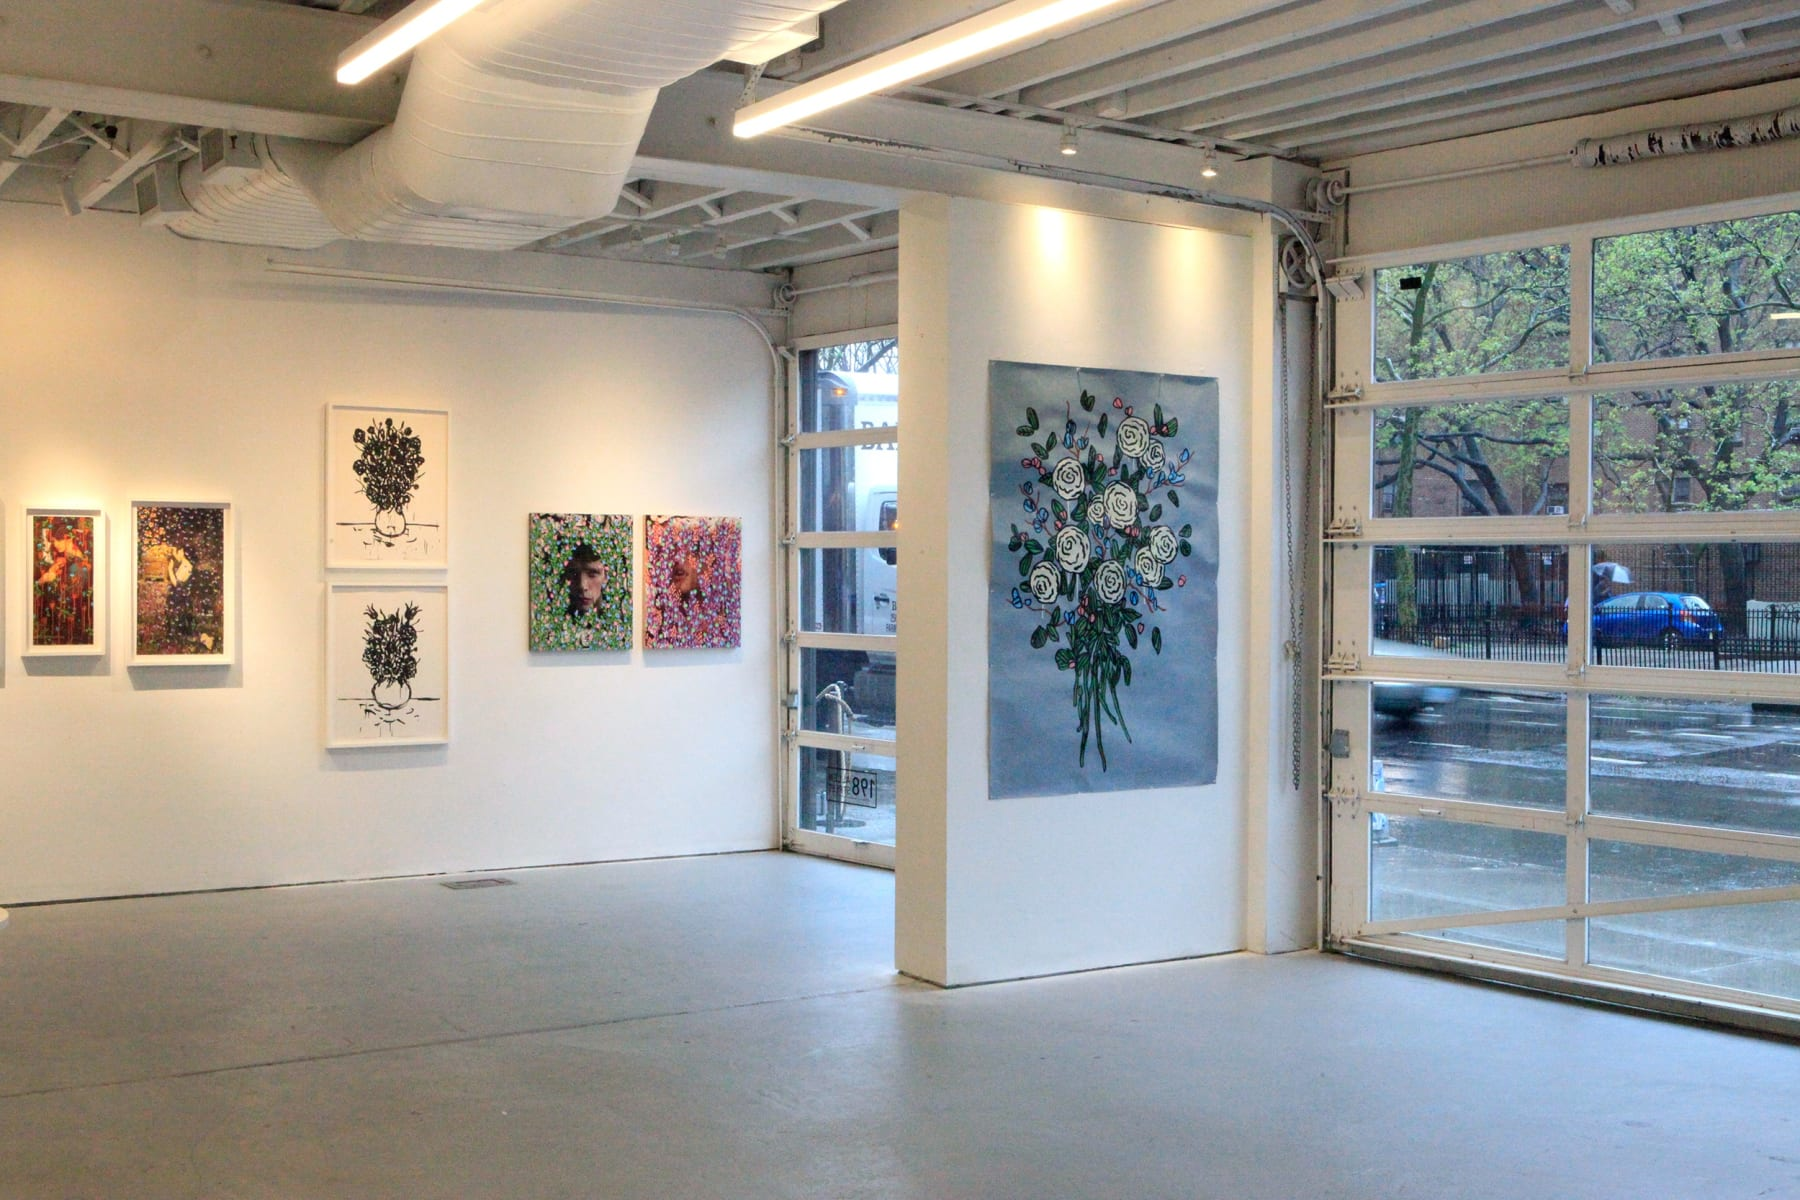 Michael De Feo Flowers Pop-Up 198 Allen Street, New York, New York Installation view.